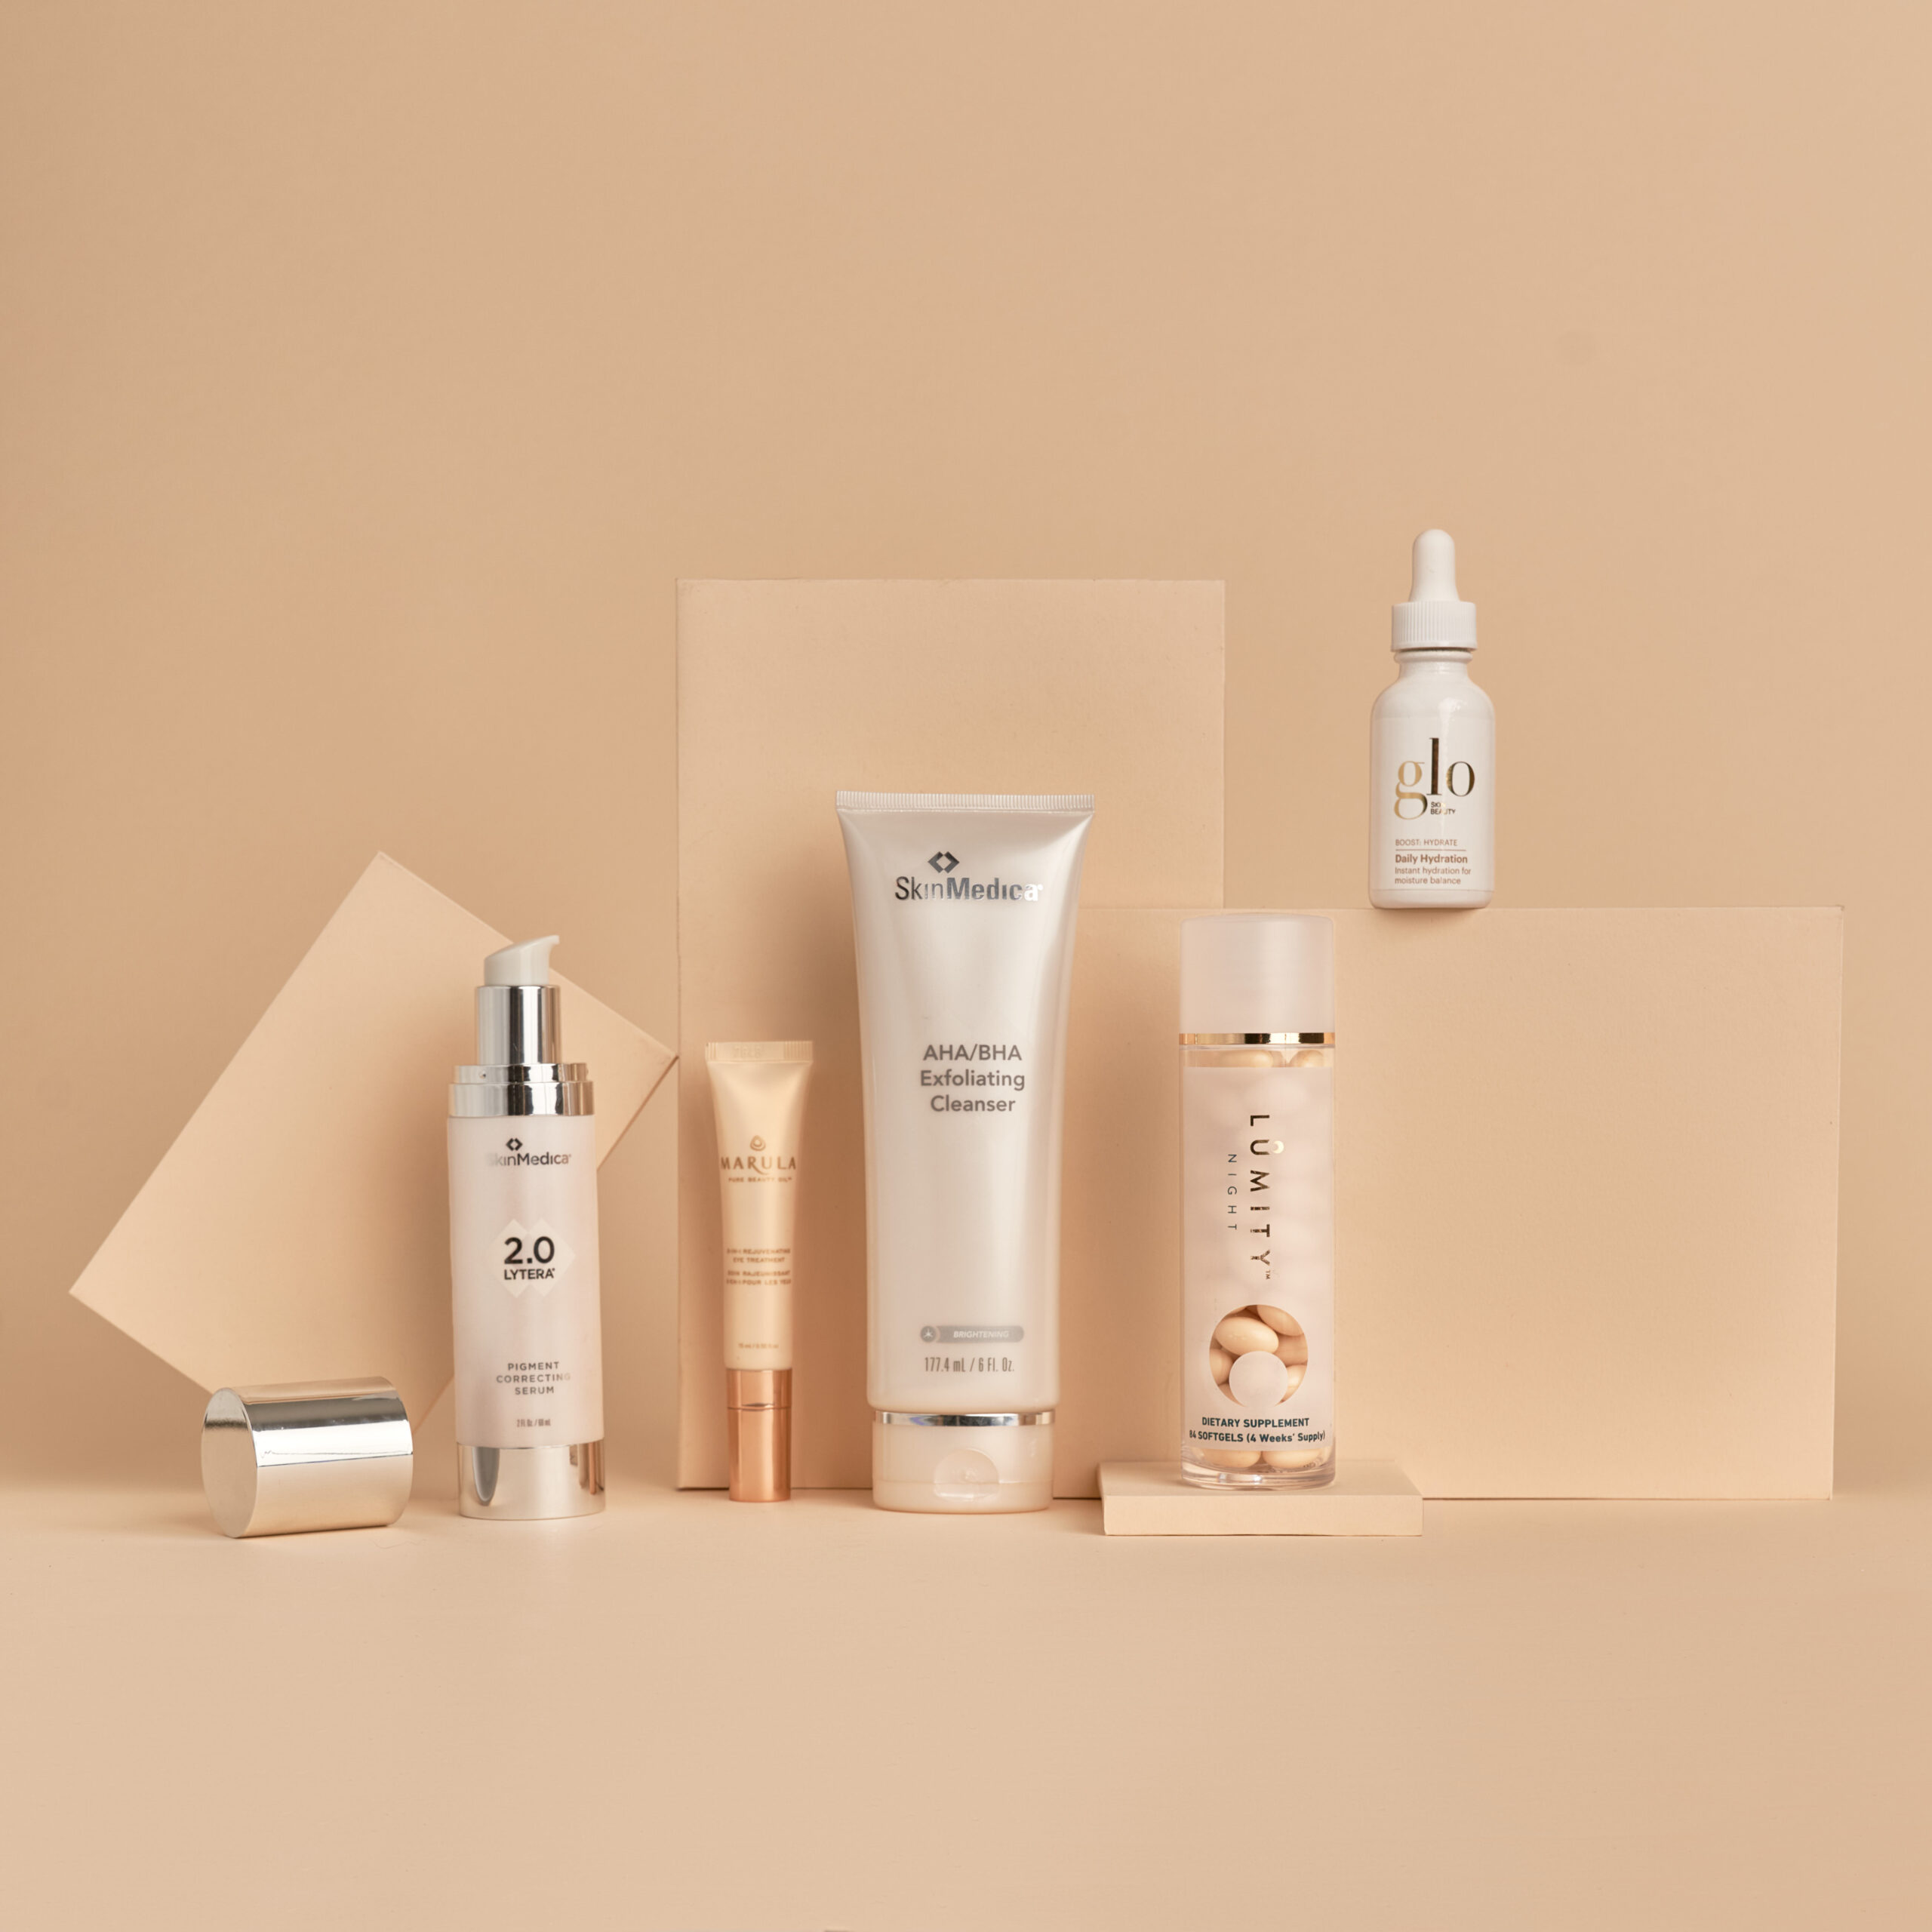 Image Nailed It skincare arranged on cream